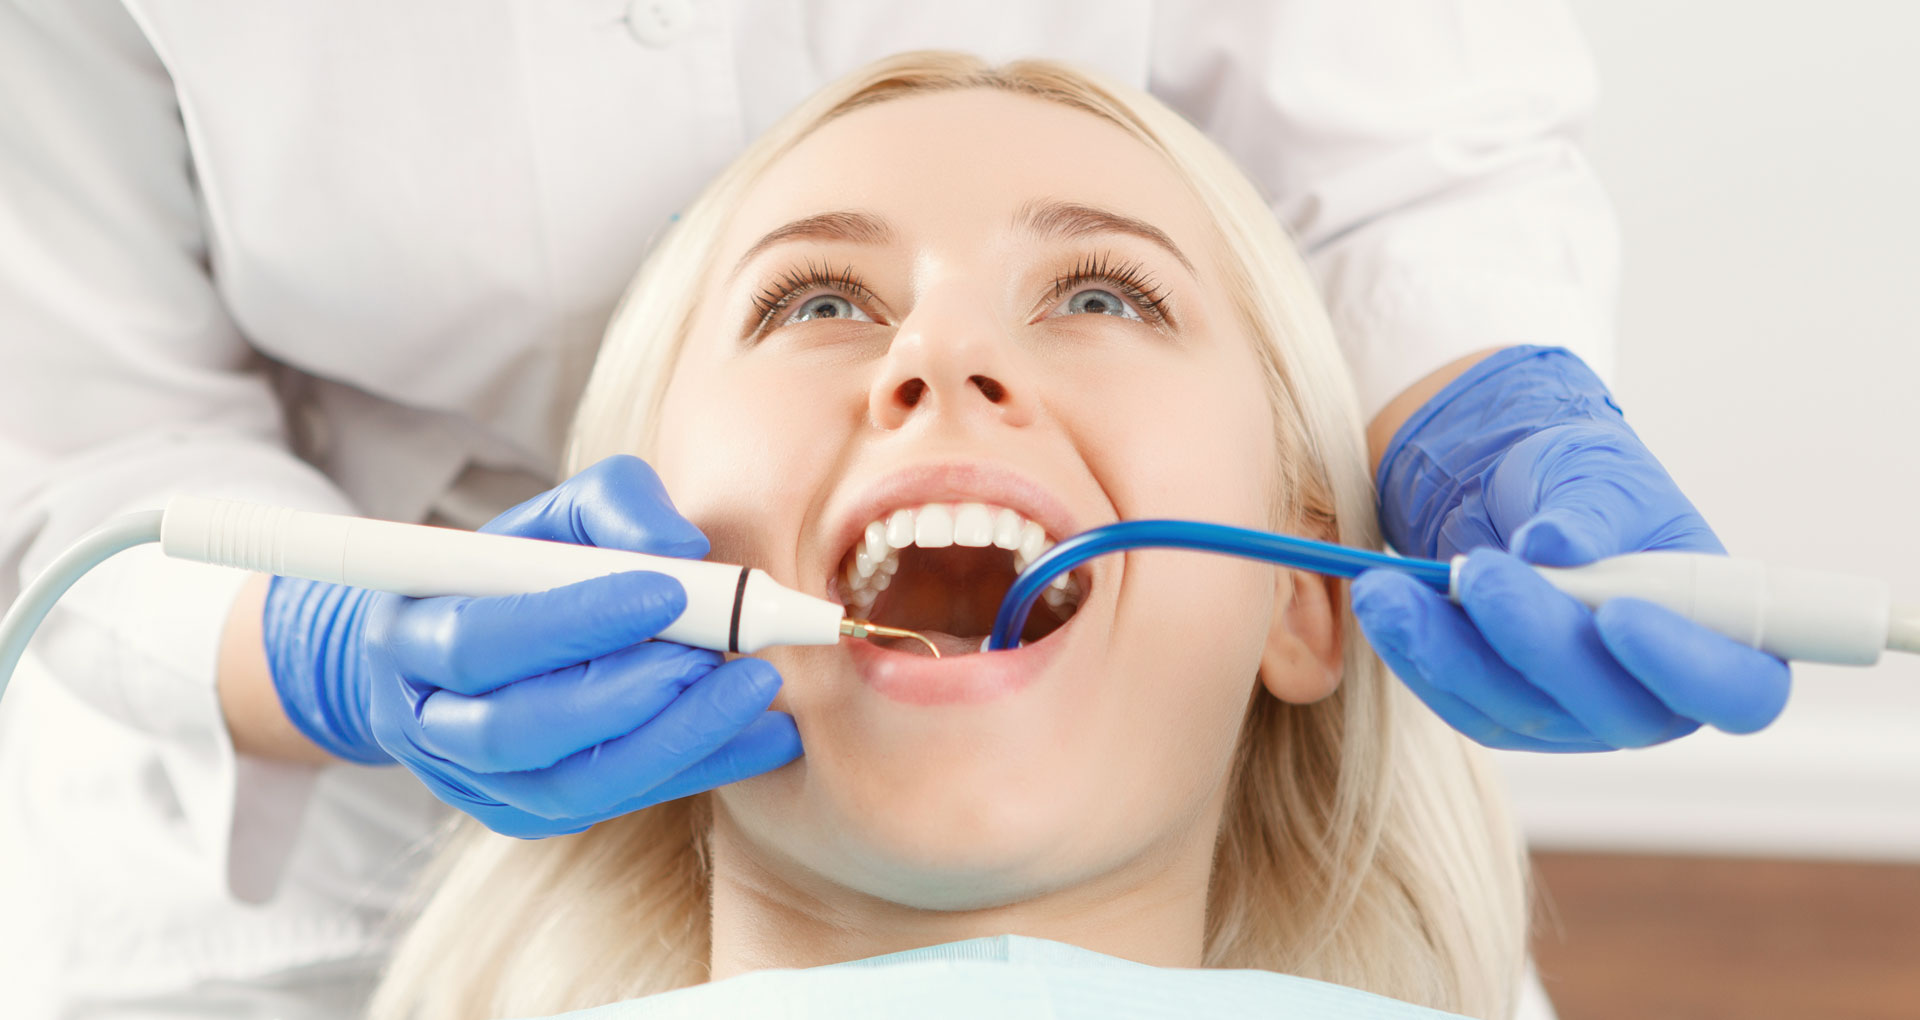 4 Important Facts Why You Need To Visit Your Dentist Regularly